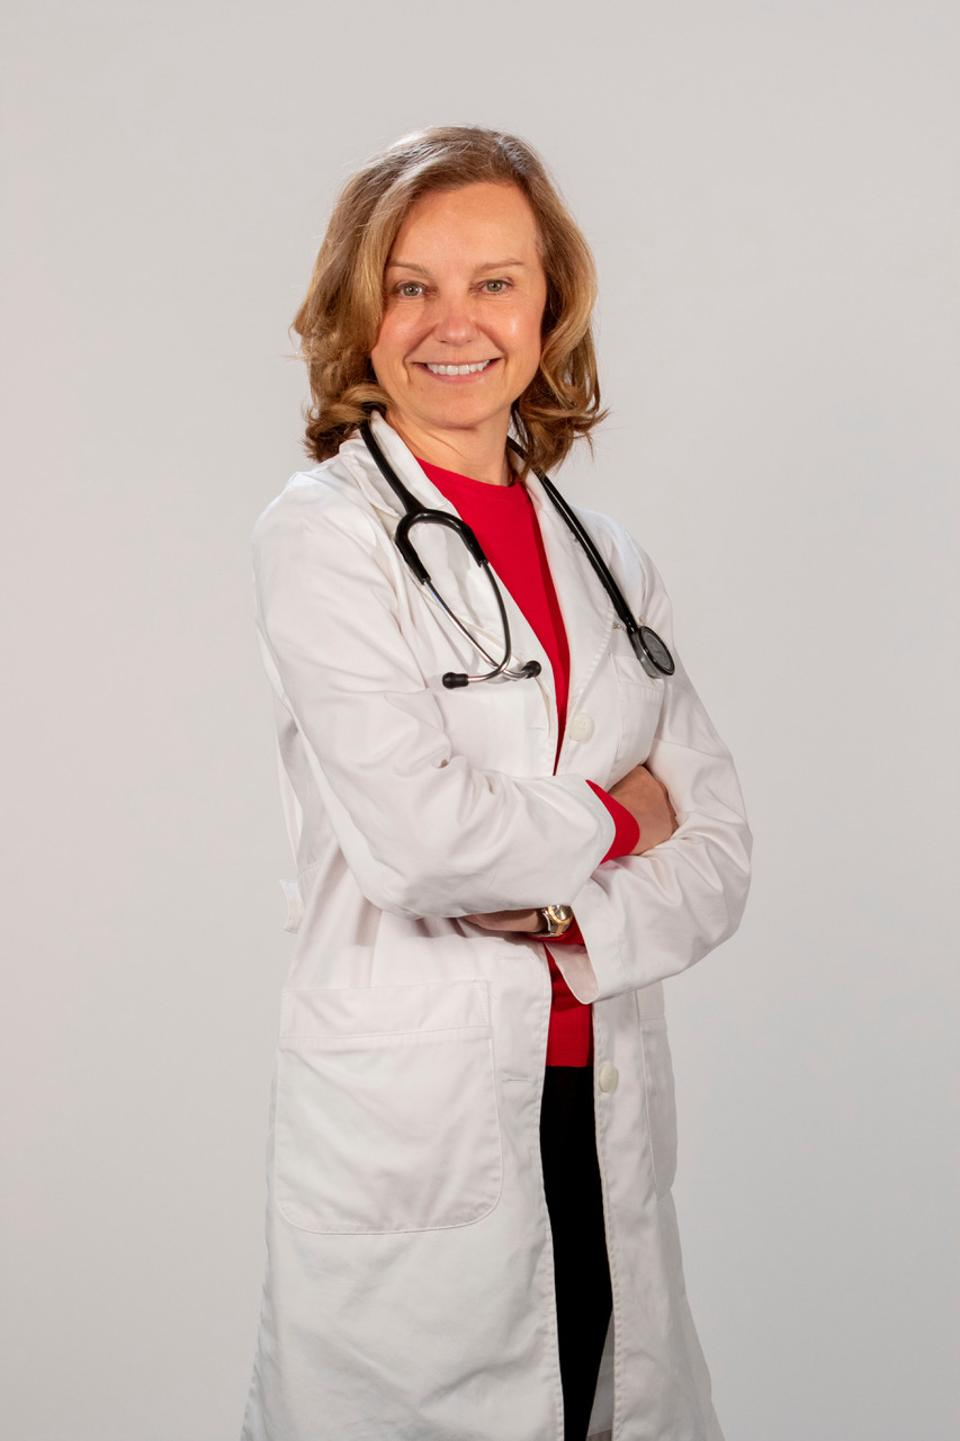 Cardiologist  Elizabeth Klodas is founder and chief medical officer of Step One Foods